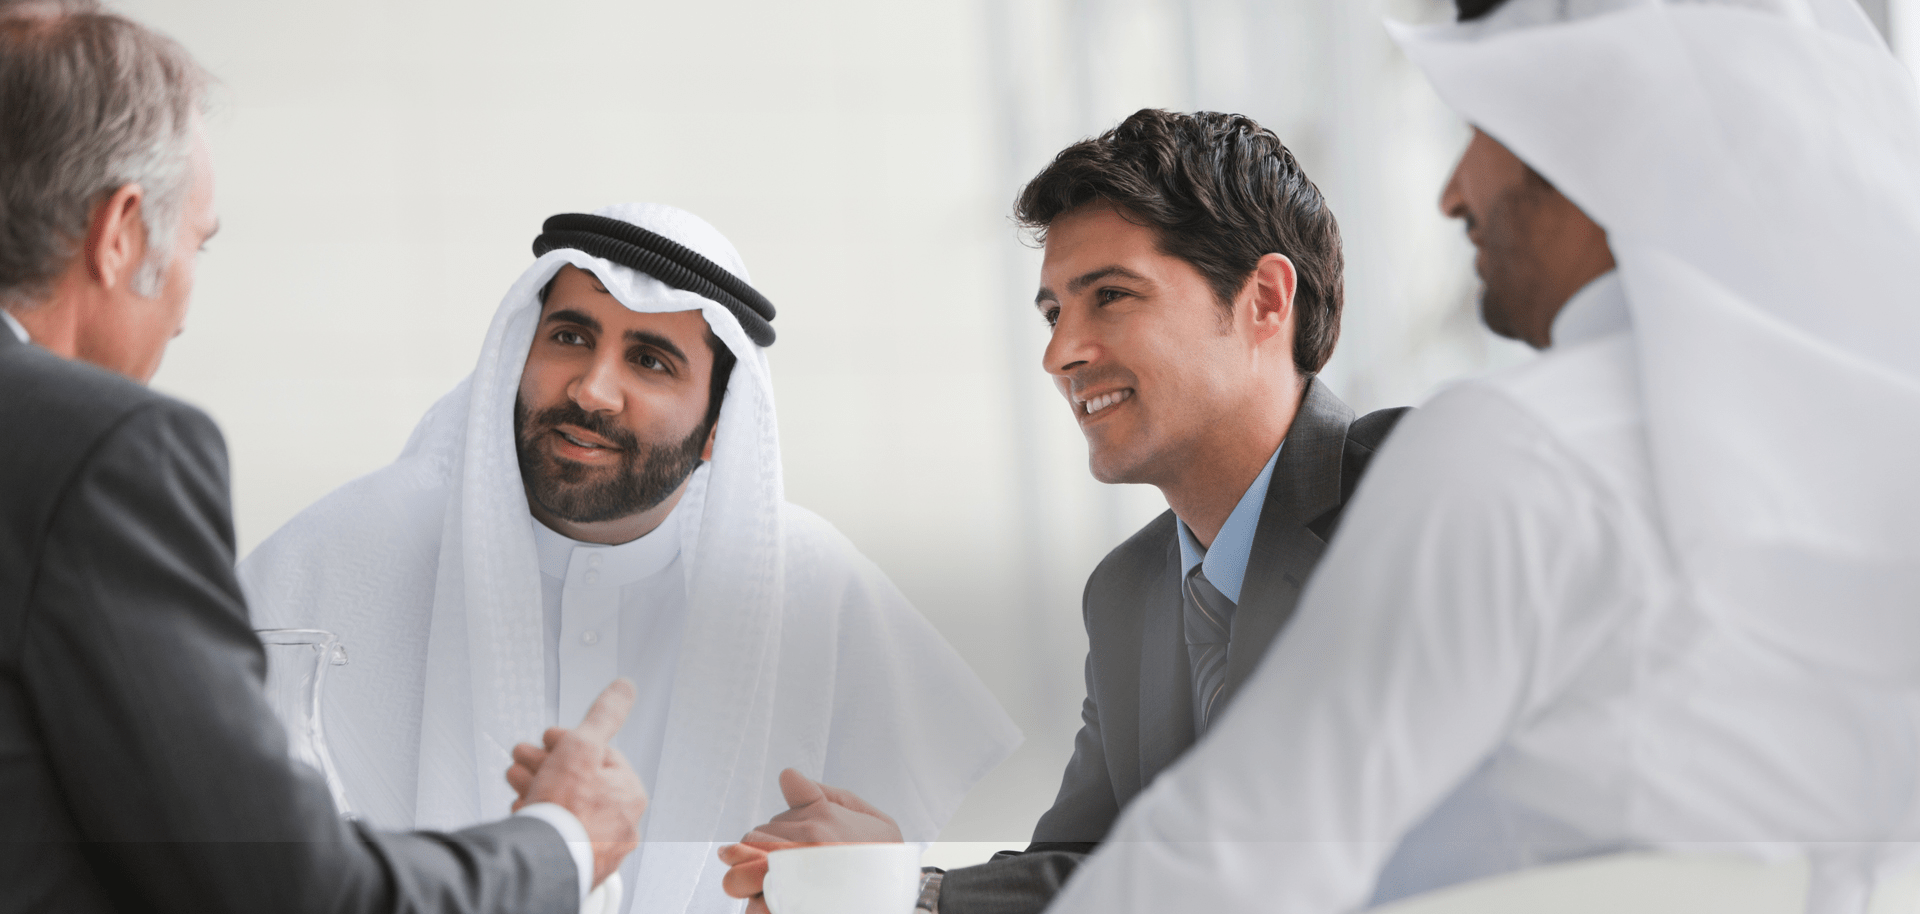 Business Setup & Company Formation in UAE